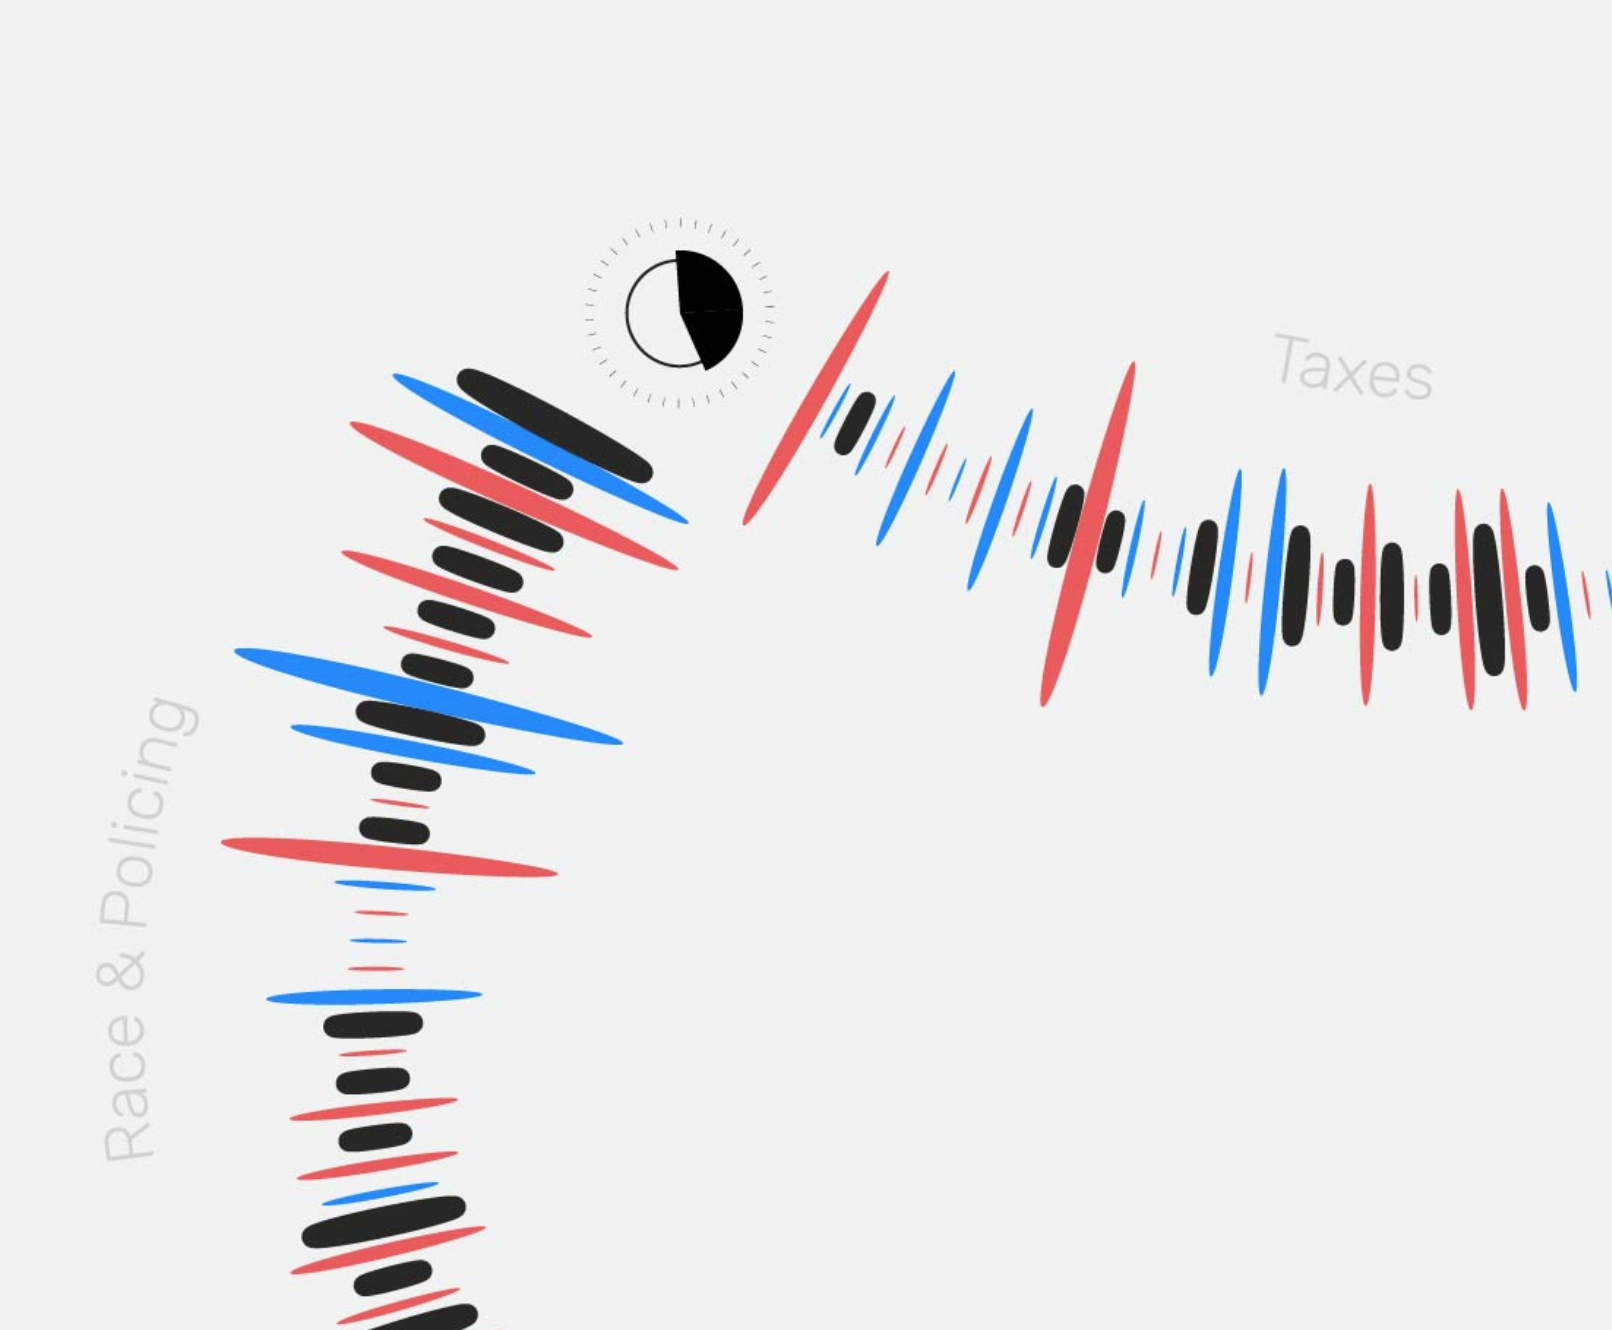 Debate Rhythm  - I broke the first presidential debate down into each statement by each candidate (and the moderator) to create a visualization of the rhythm of the debate. The staccato interruptions and extended monologues of each candidate are easy to read in this simple yet effective visualization.